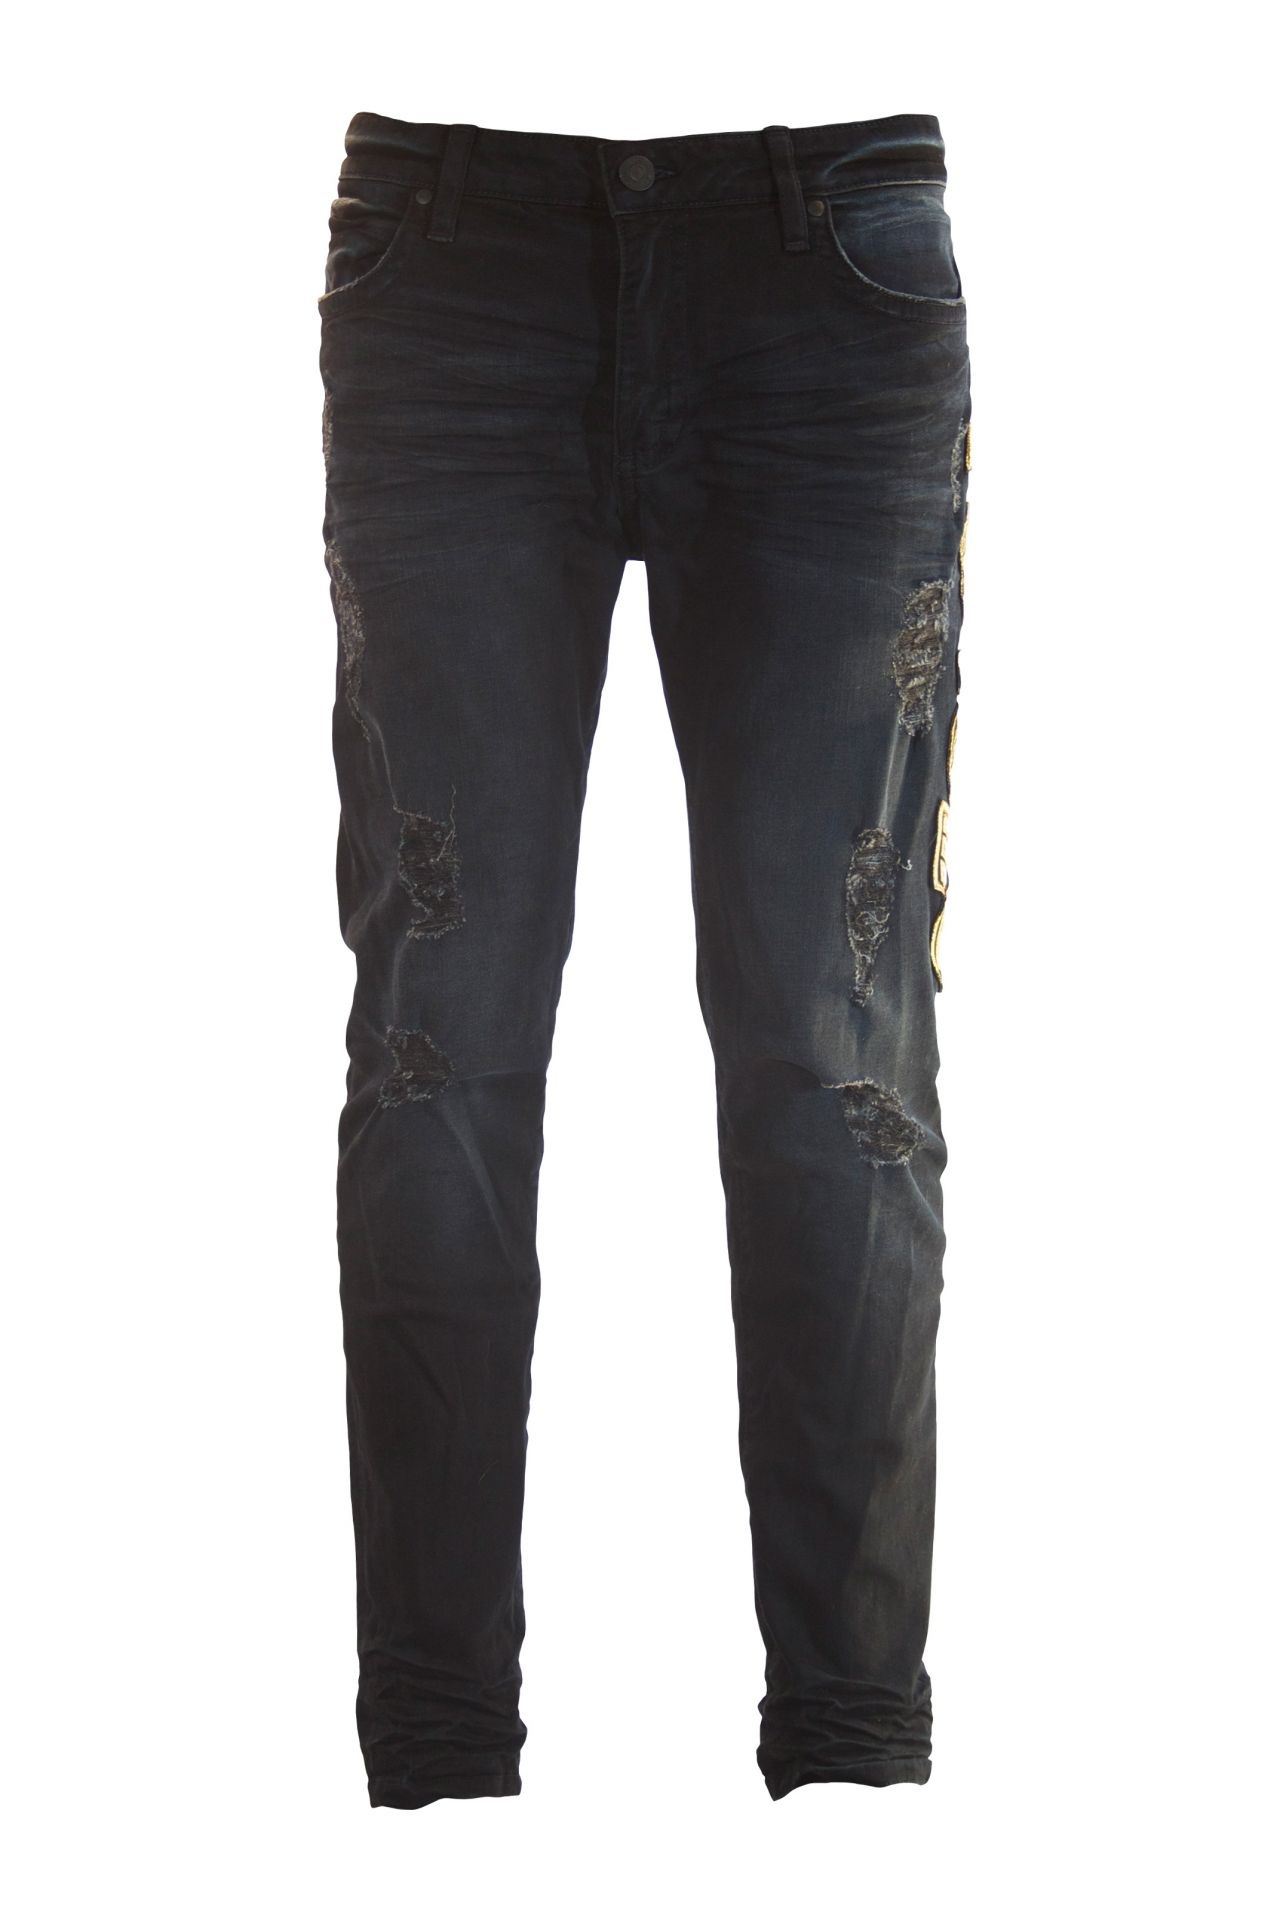 SKINNY IN F-UP BLACK WITH GOLD PATCHES